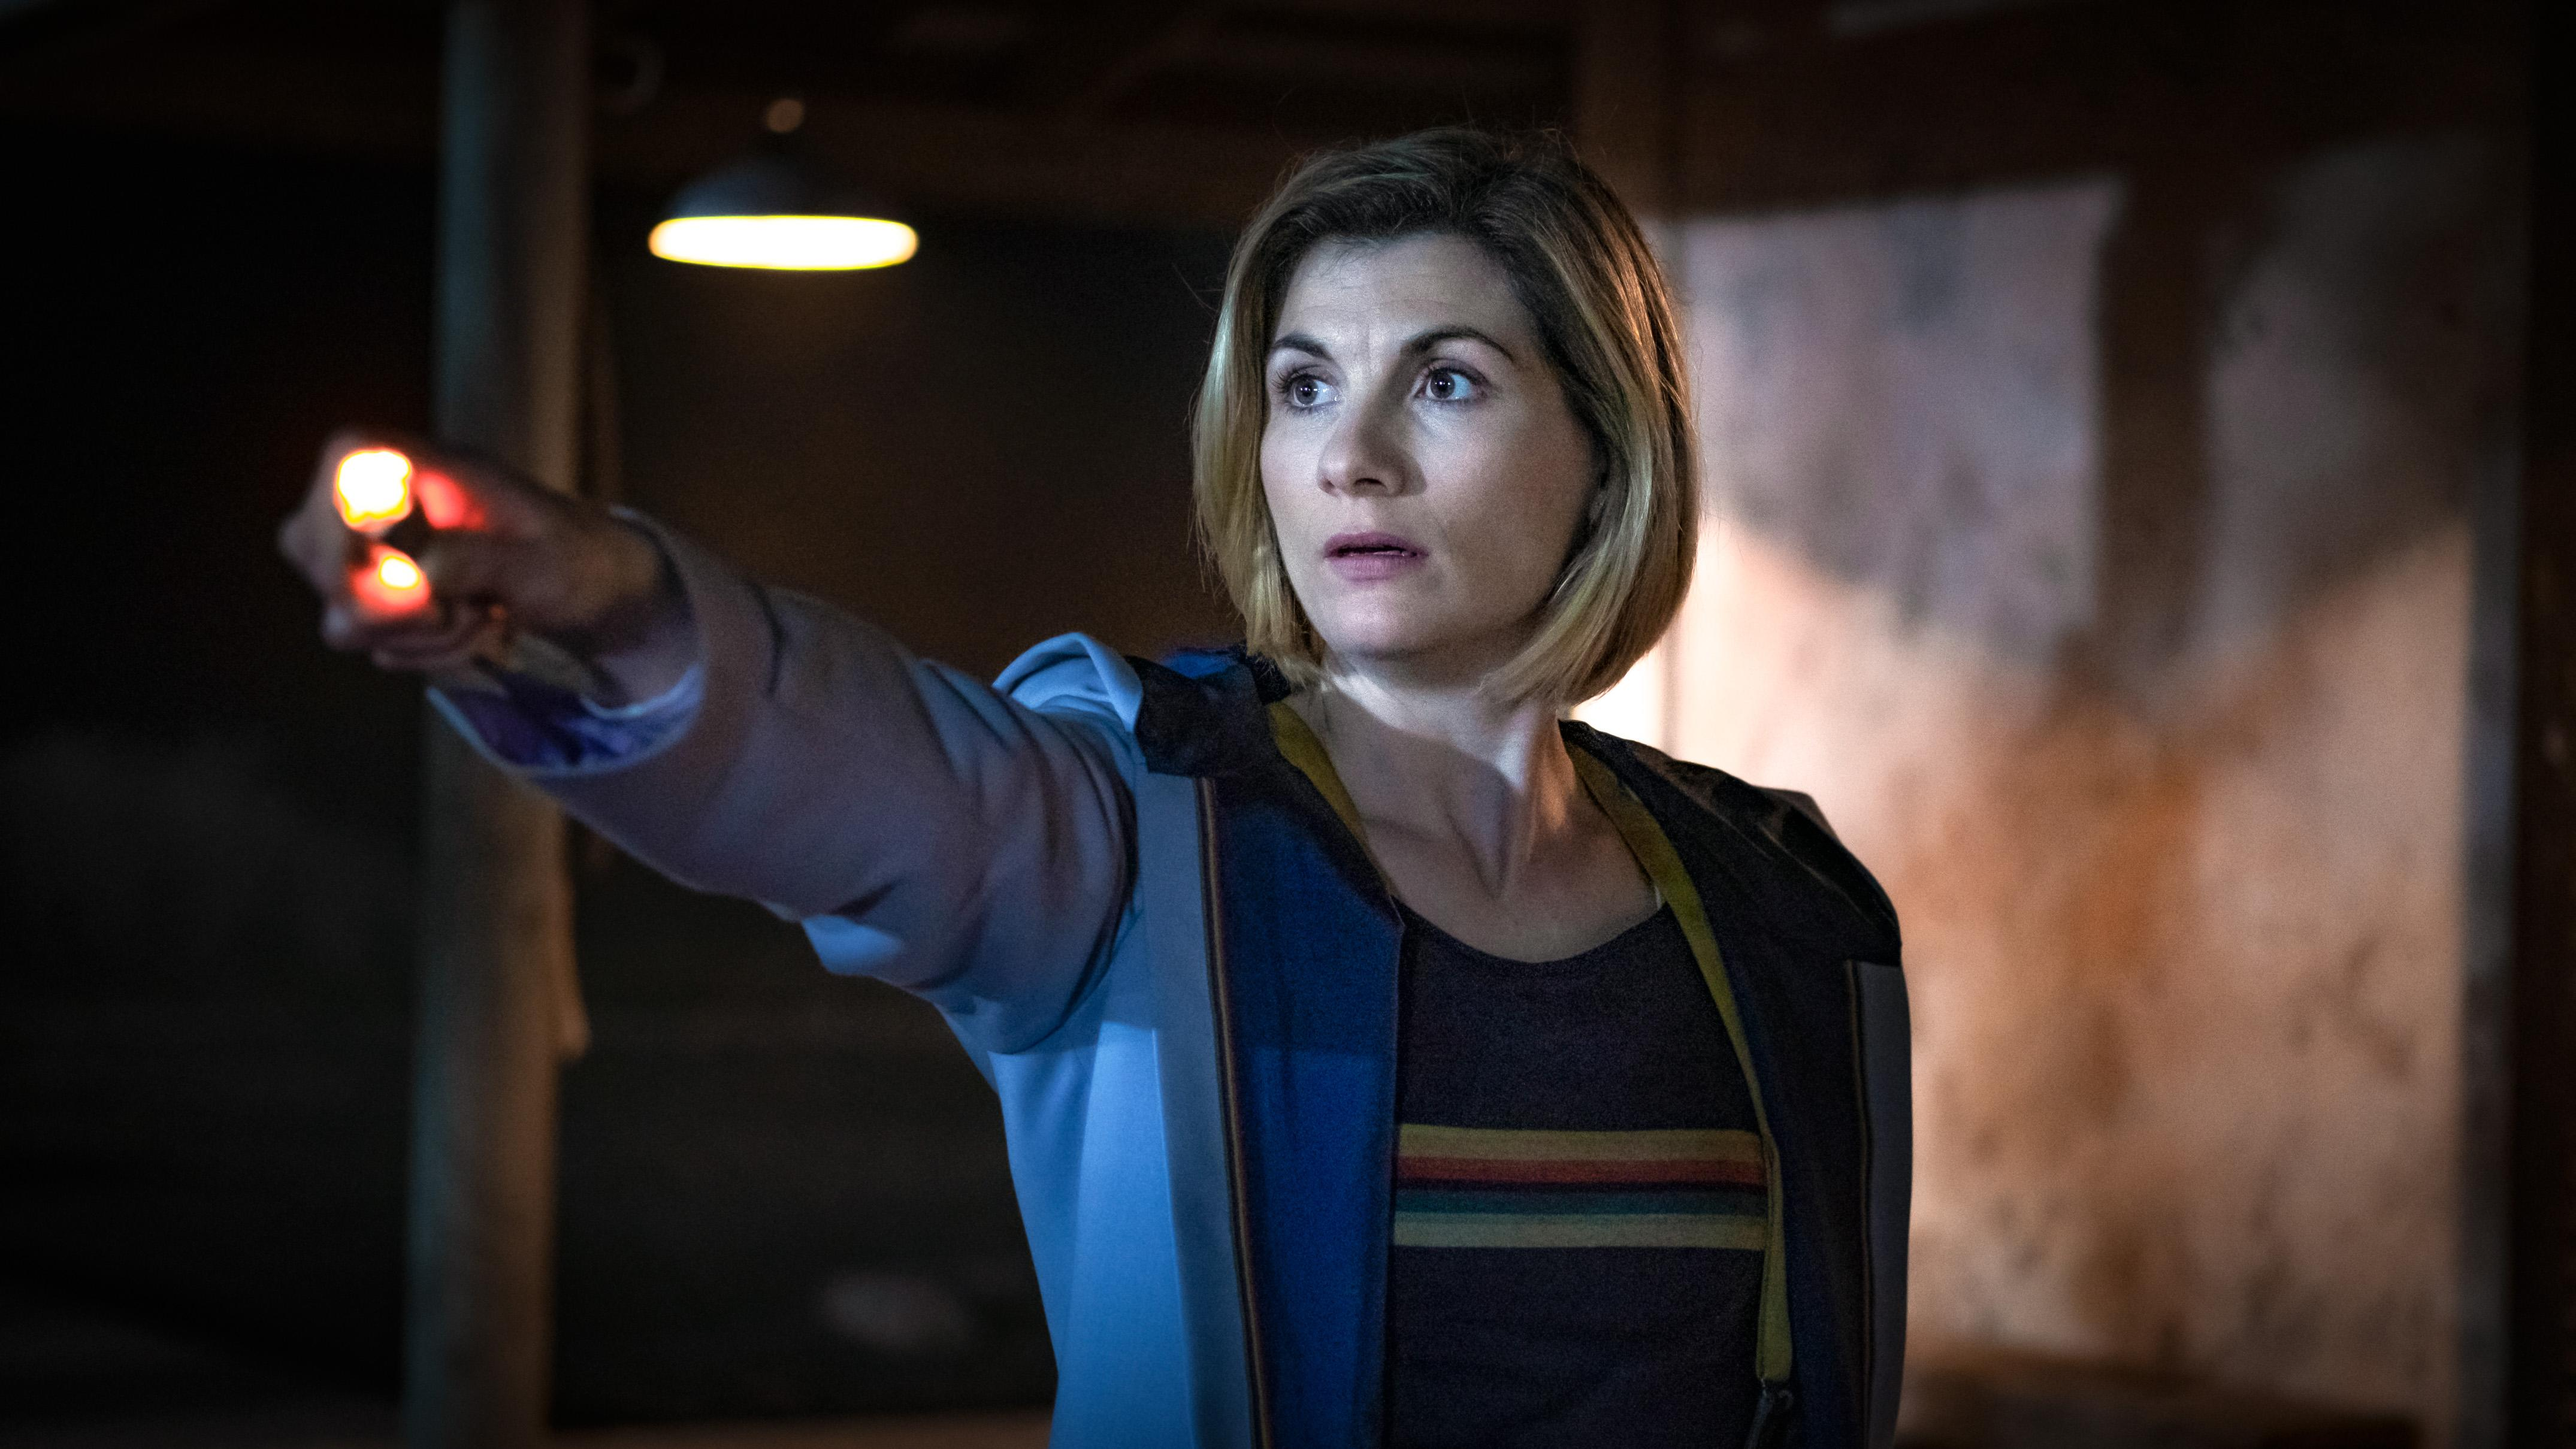 'Doctor Who' showrunner Chris Chibnall teases the 'most lavish, action-packed episode' ever with 'Spyfall' (exclusive)